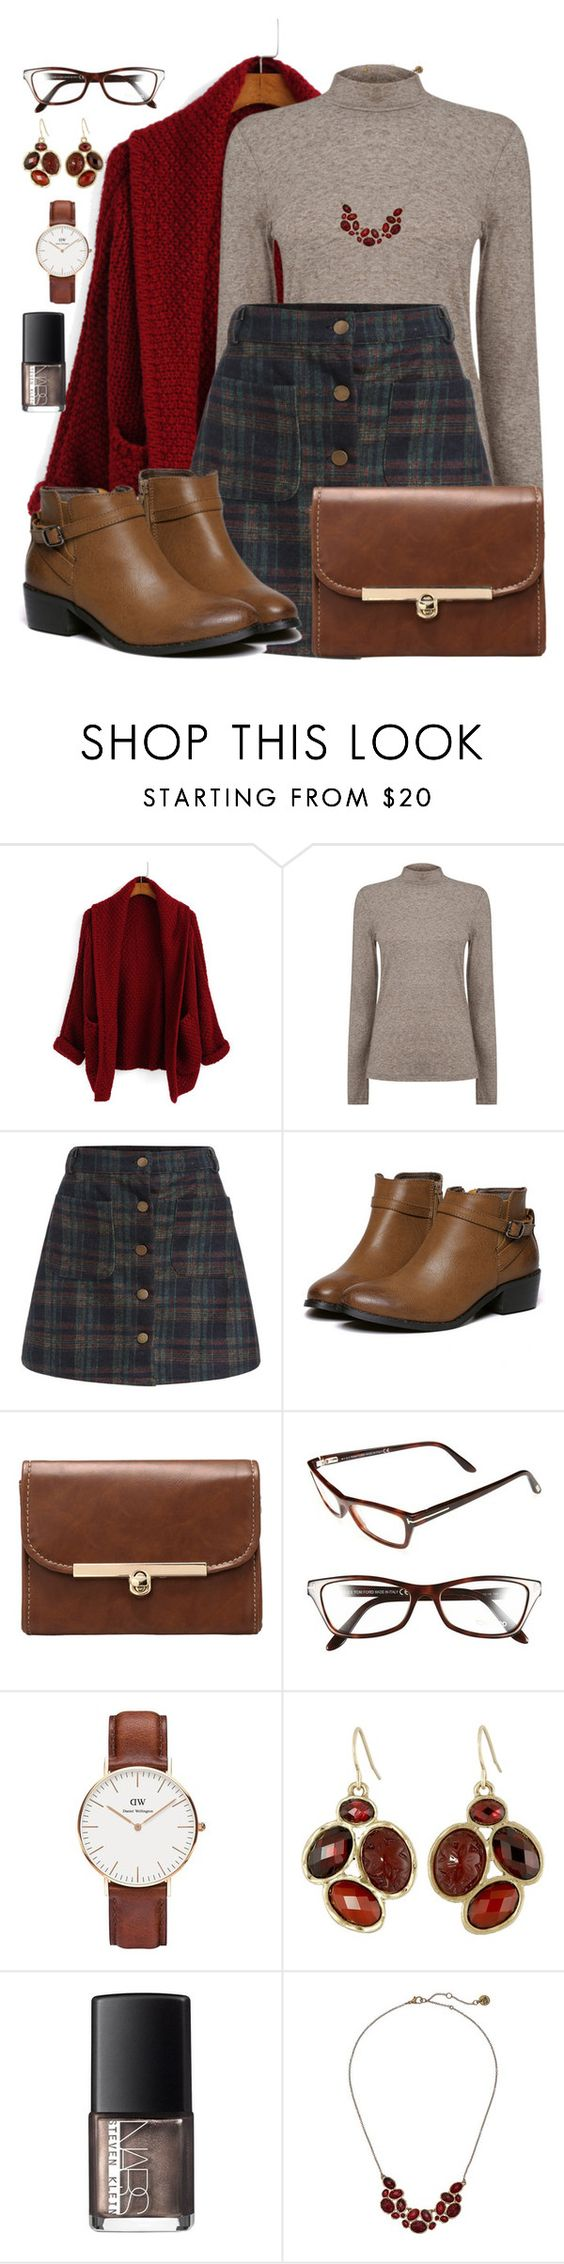 """11 November 2015: Skool Krush"" by edwardsboysmom ❤ liked on Polyvore featuring Warehouse, Tom Ford, Daniel Wellington, The Sak and NARS Cosmetics"